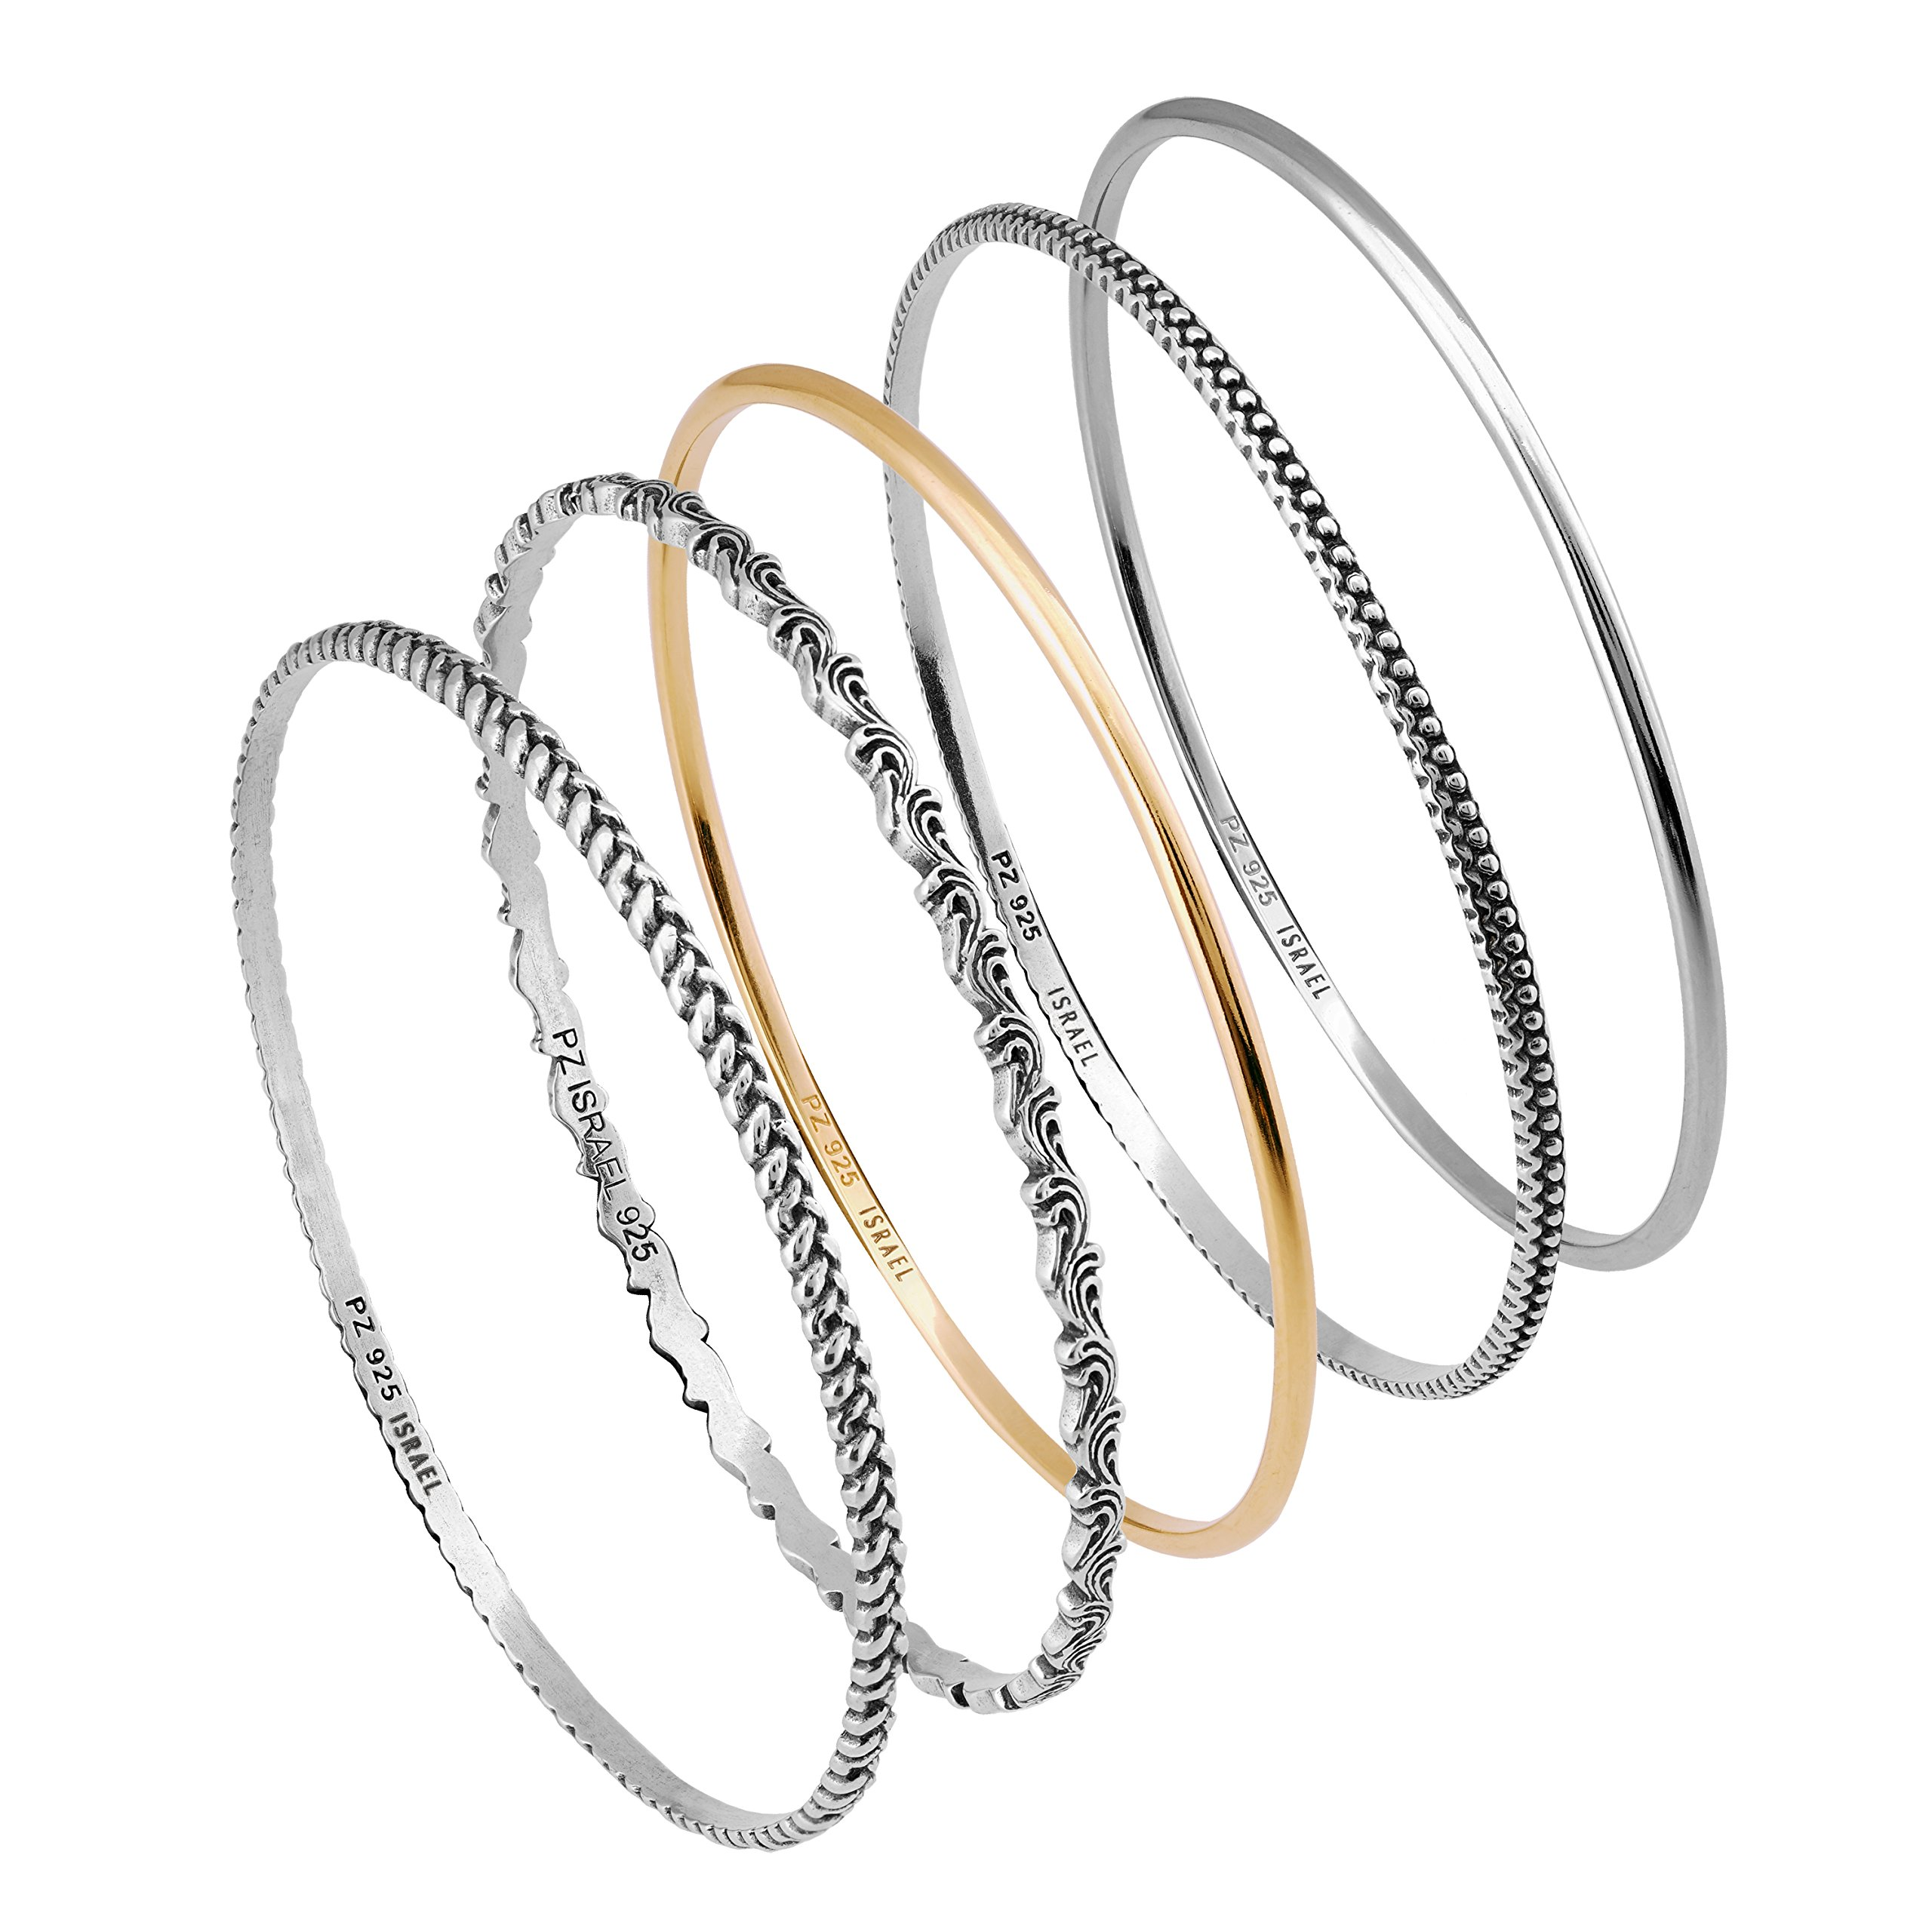 Paz Creations ♥925 Sterling Silver Set of 5 Two Tone Bangles (7.25)